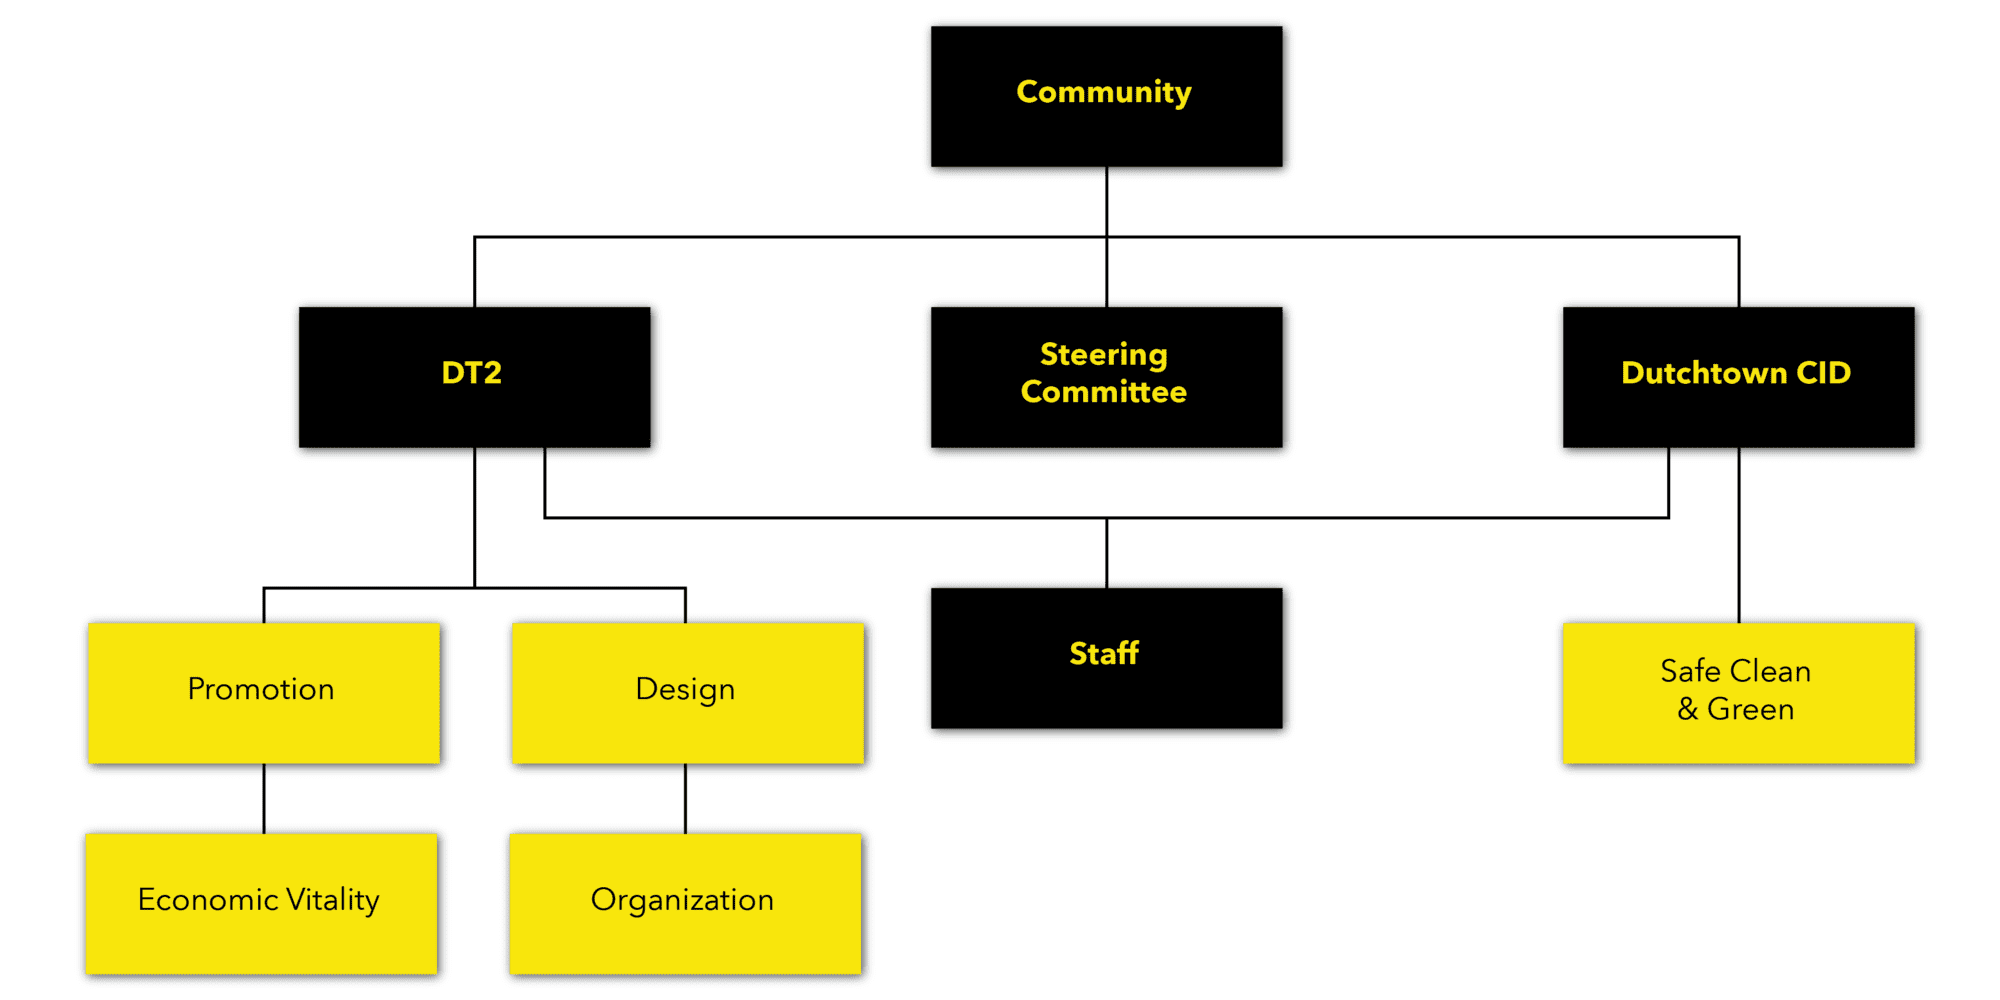 A chart showing the structure of the Dutchtown Committees.